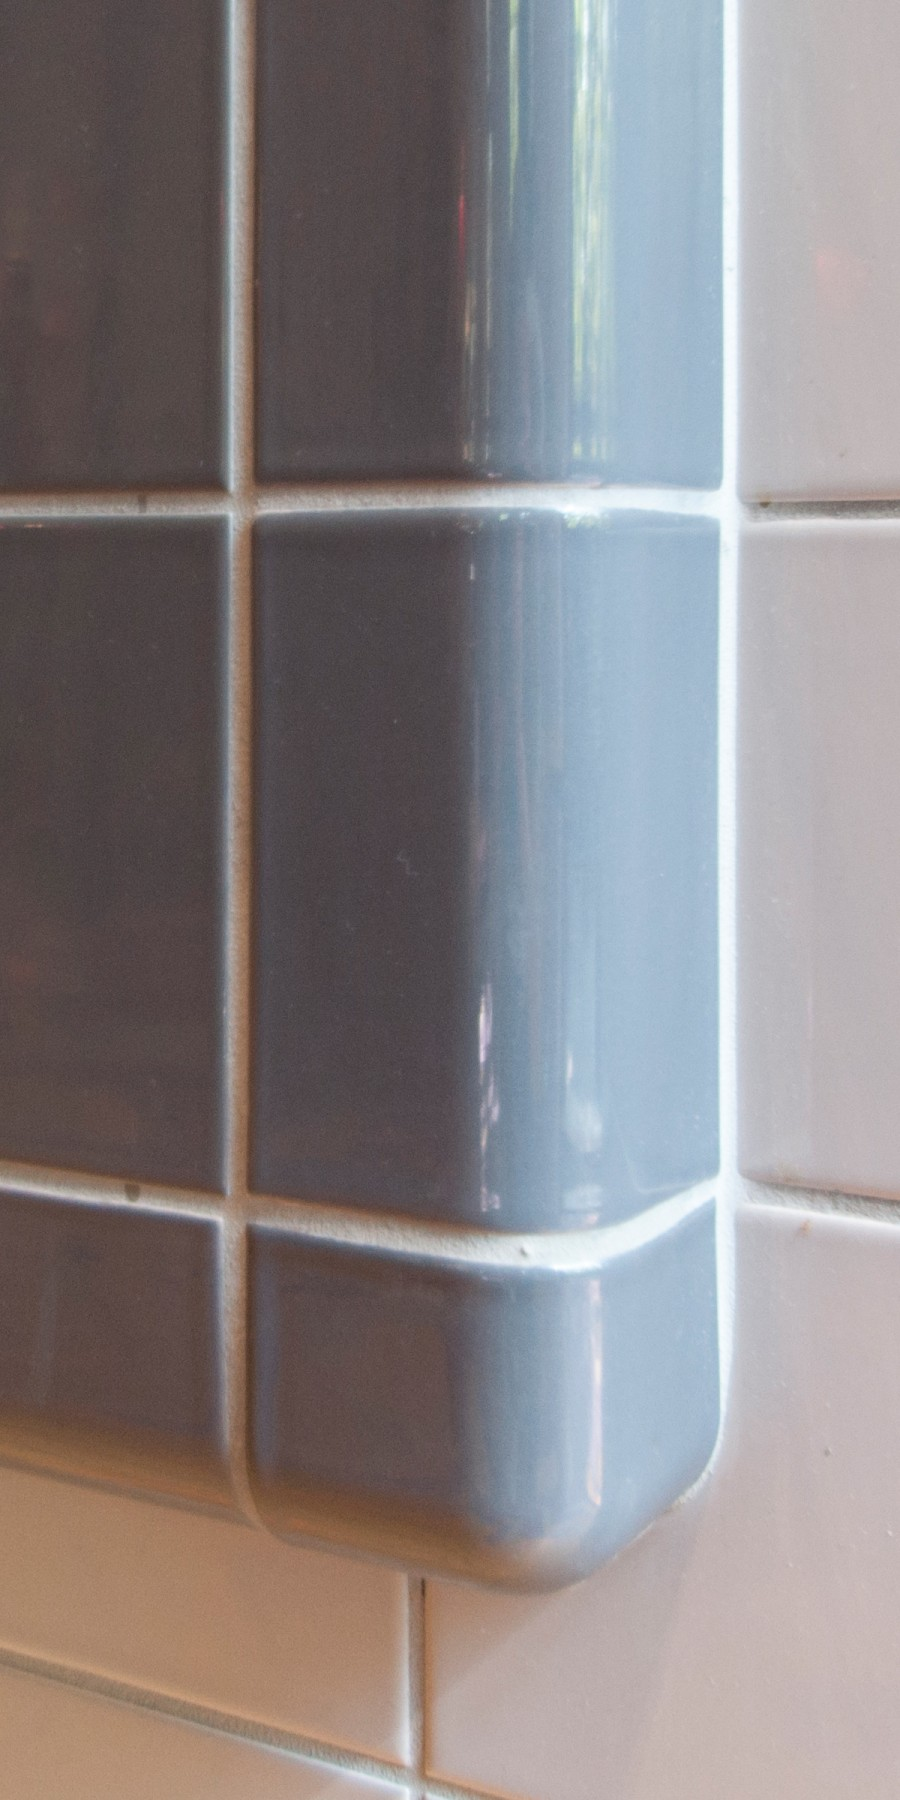 rounded tile corner, modern 3d functional and construction tiles available in multiple colors